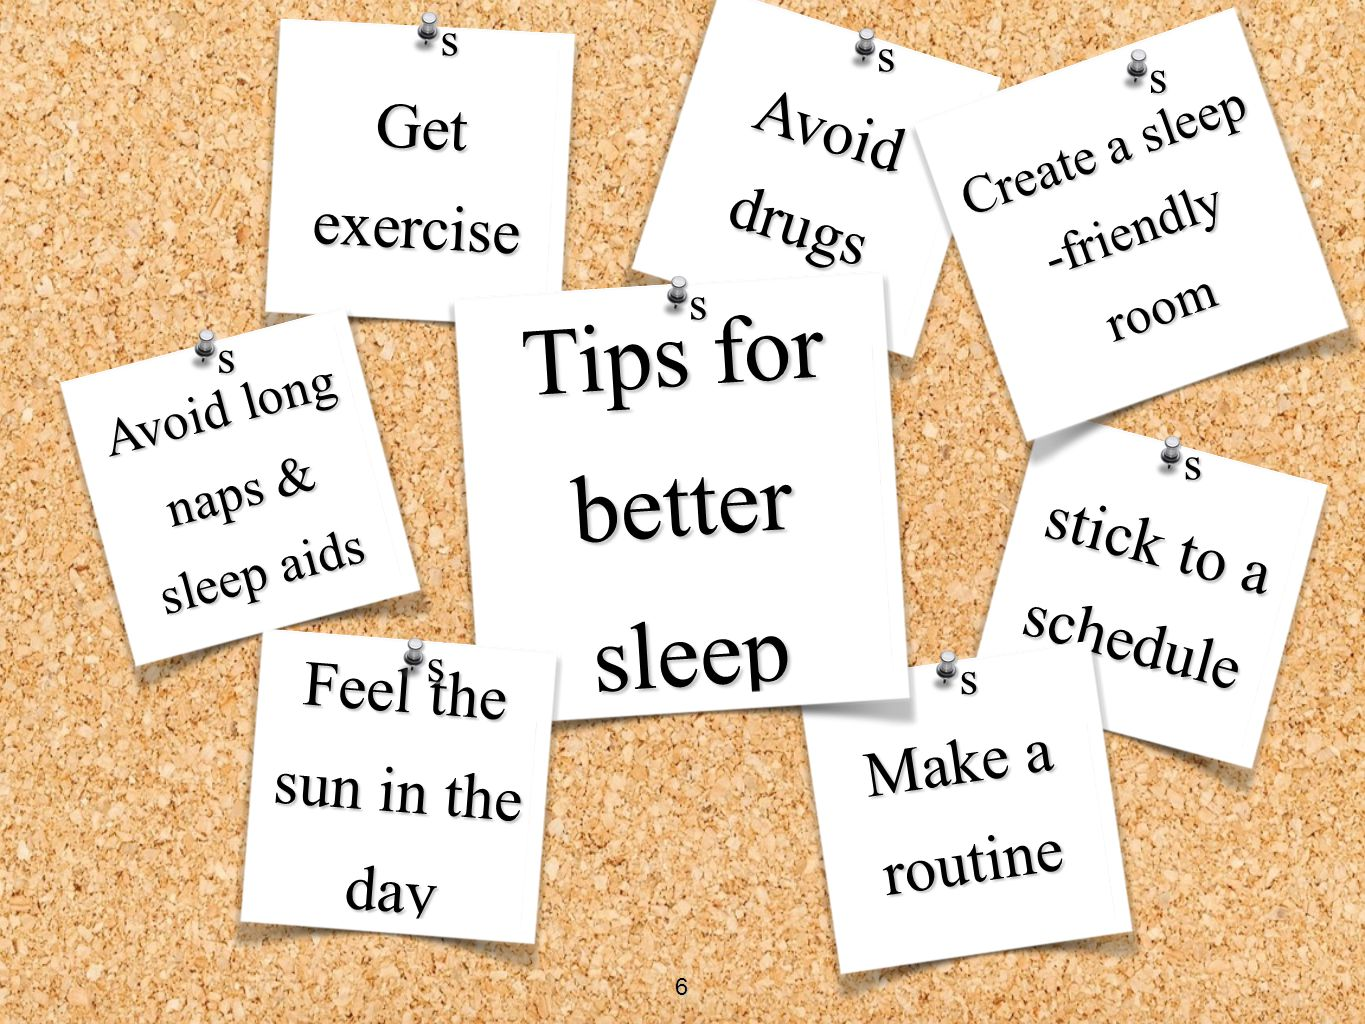 Avoid drugs stick to a schedule Get exercise Avoid long naps & sleep aids Create a sleep -friendly room Make a routine Tips for better sleep s s s s s